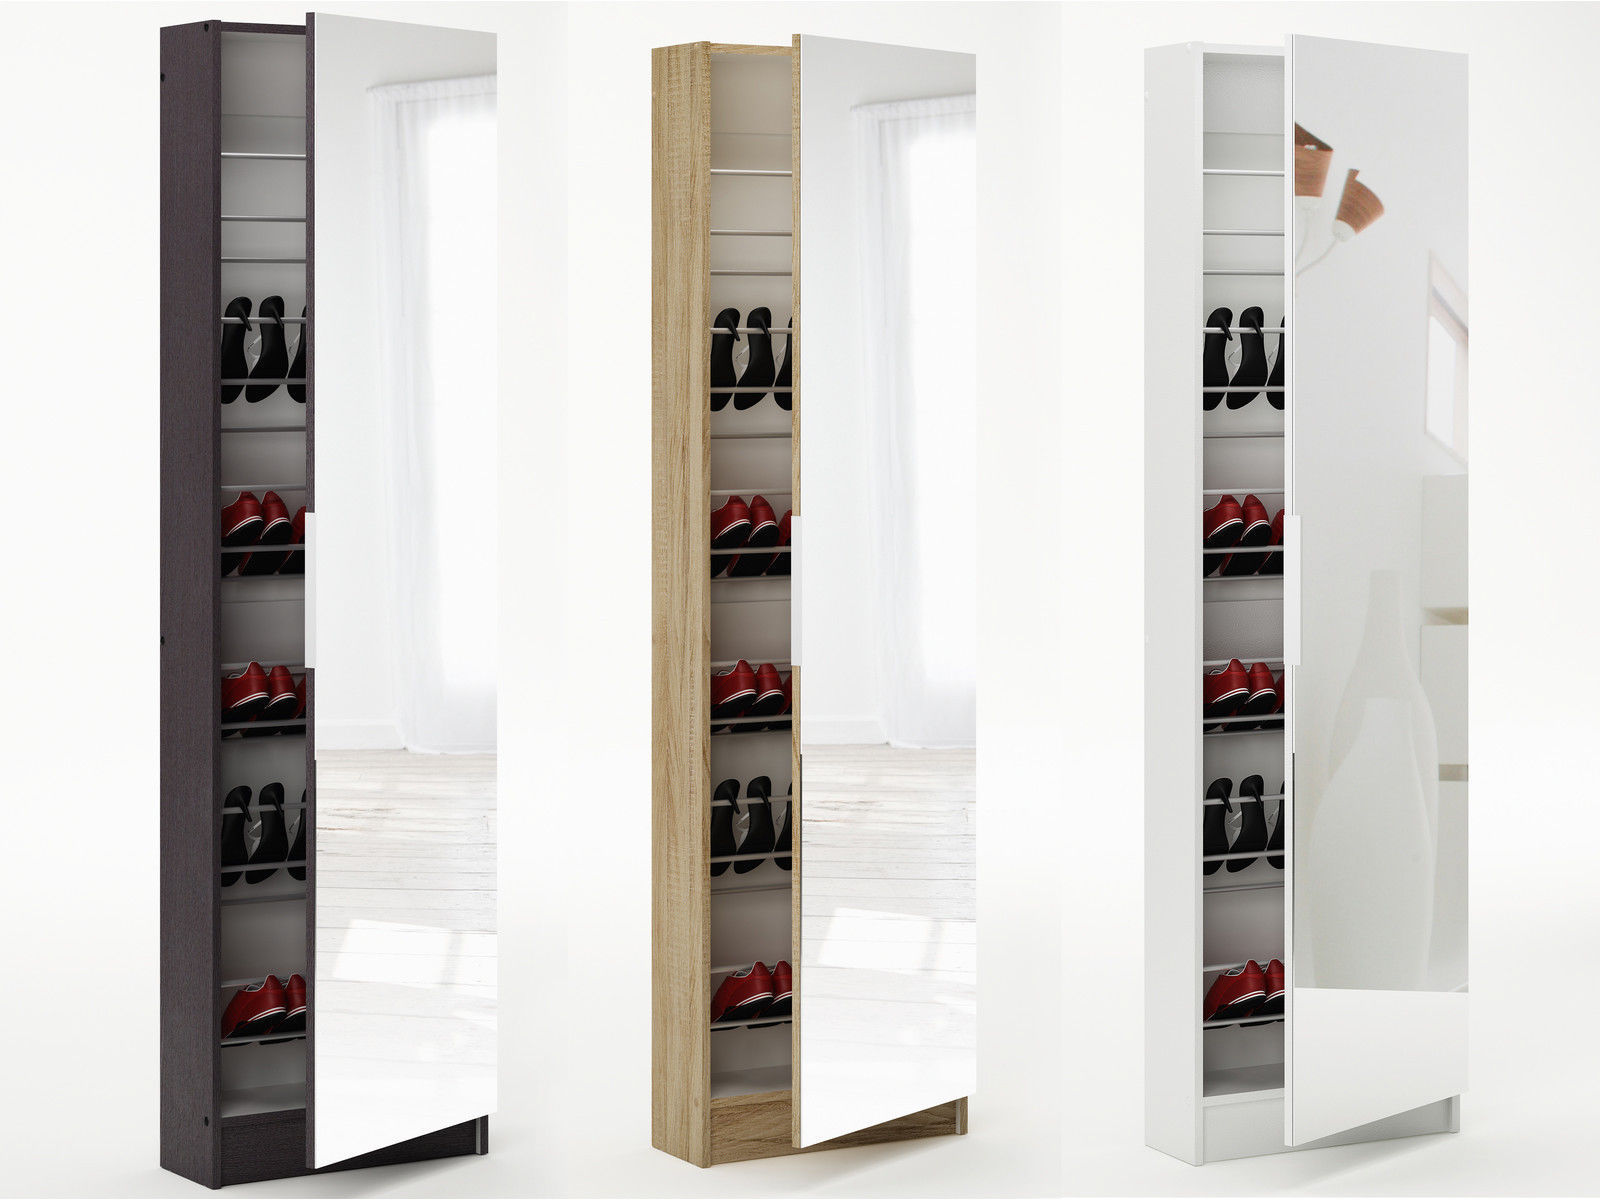 6ft Mirrored Shoe Cabinet Storage 180cm 6 Tier Full